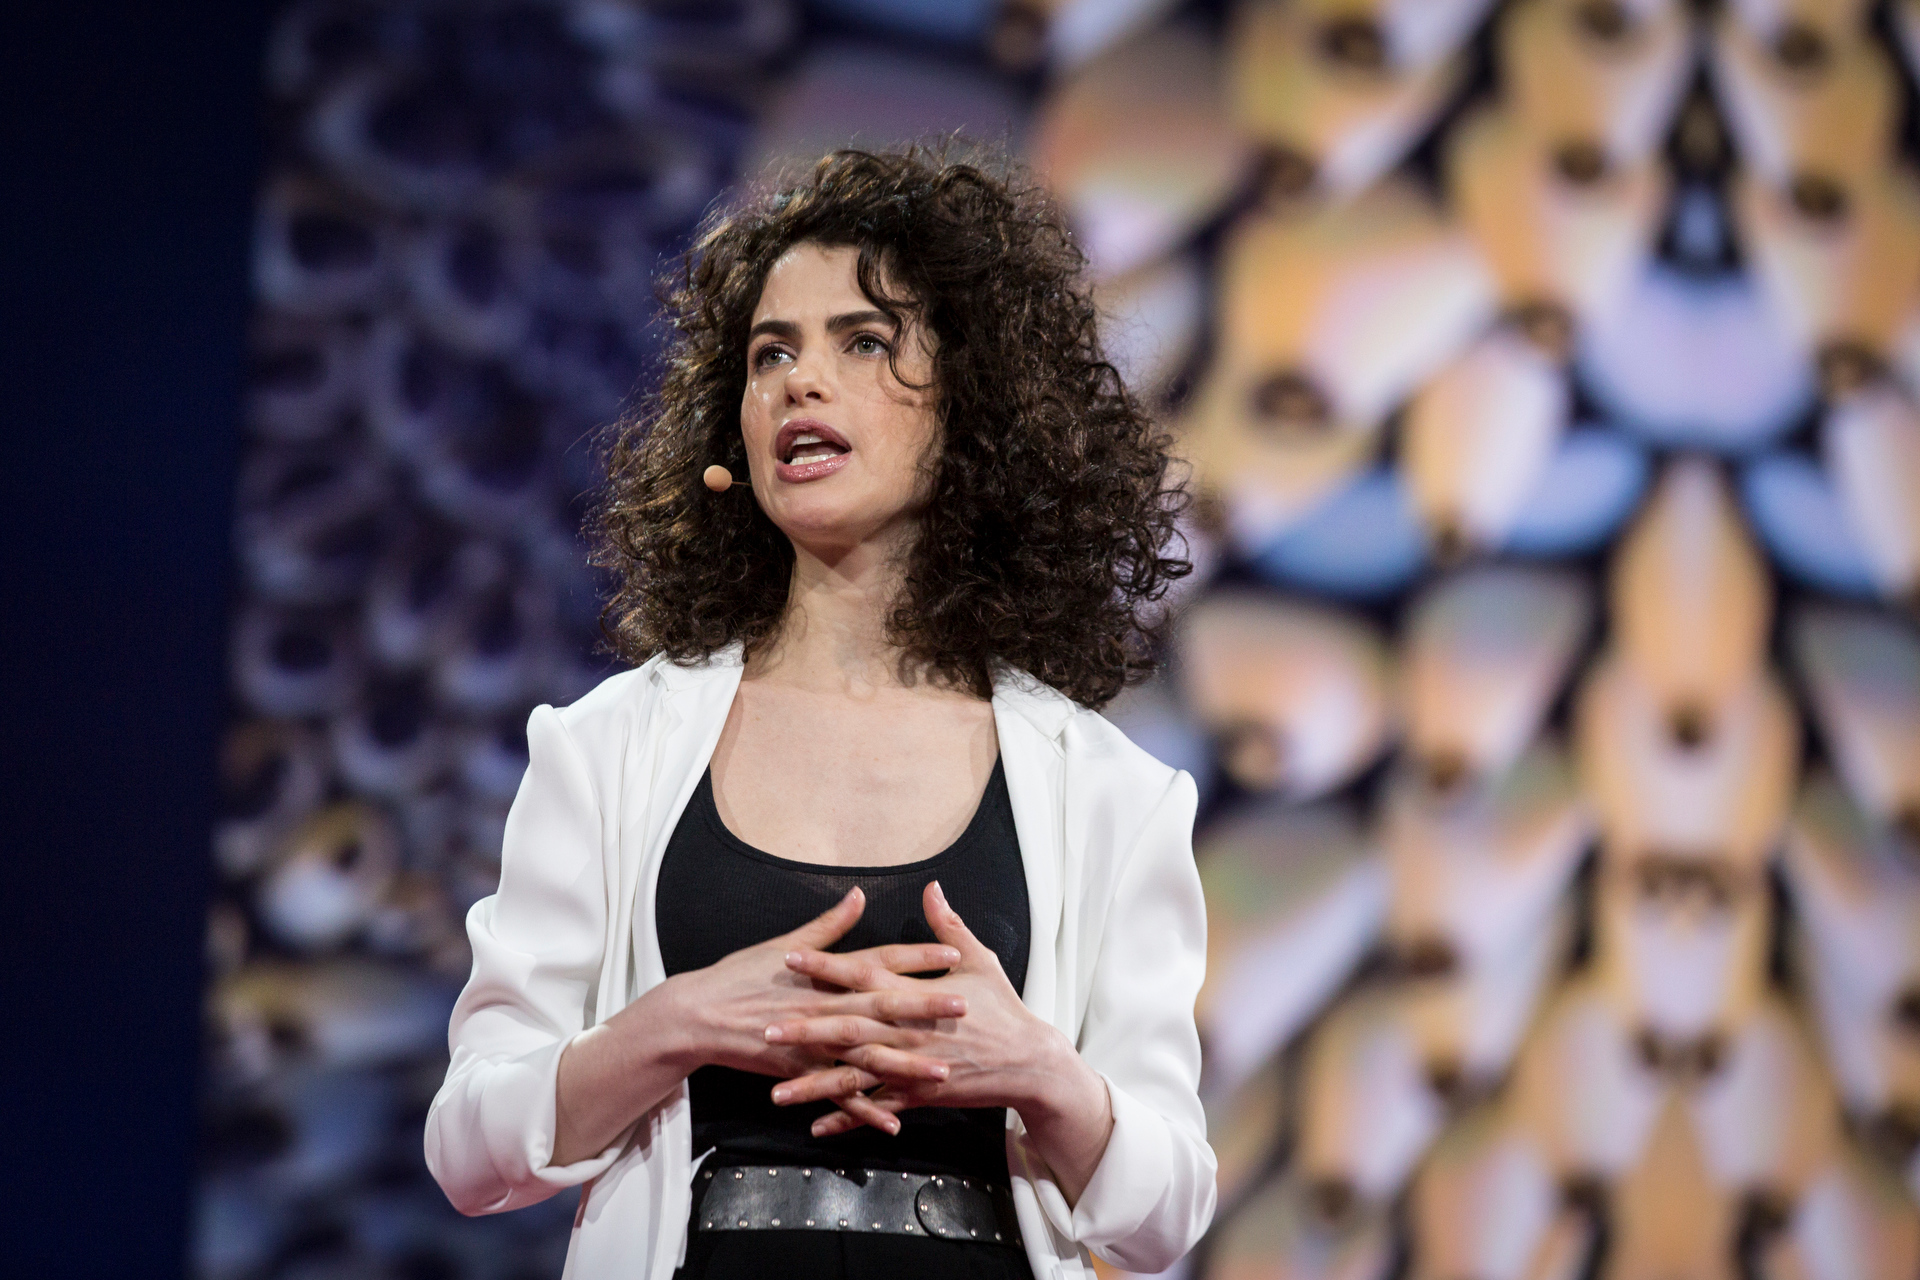 Neri Oxman speaks at TED2015 - Truth and Dare, Session 10. Photo: Bret Hartman/TED